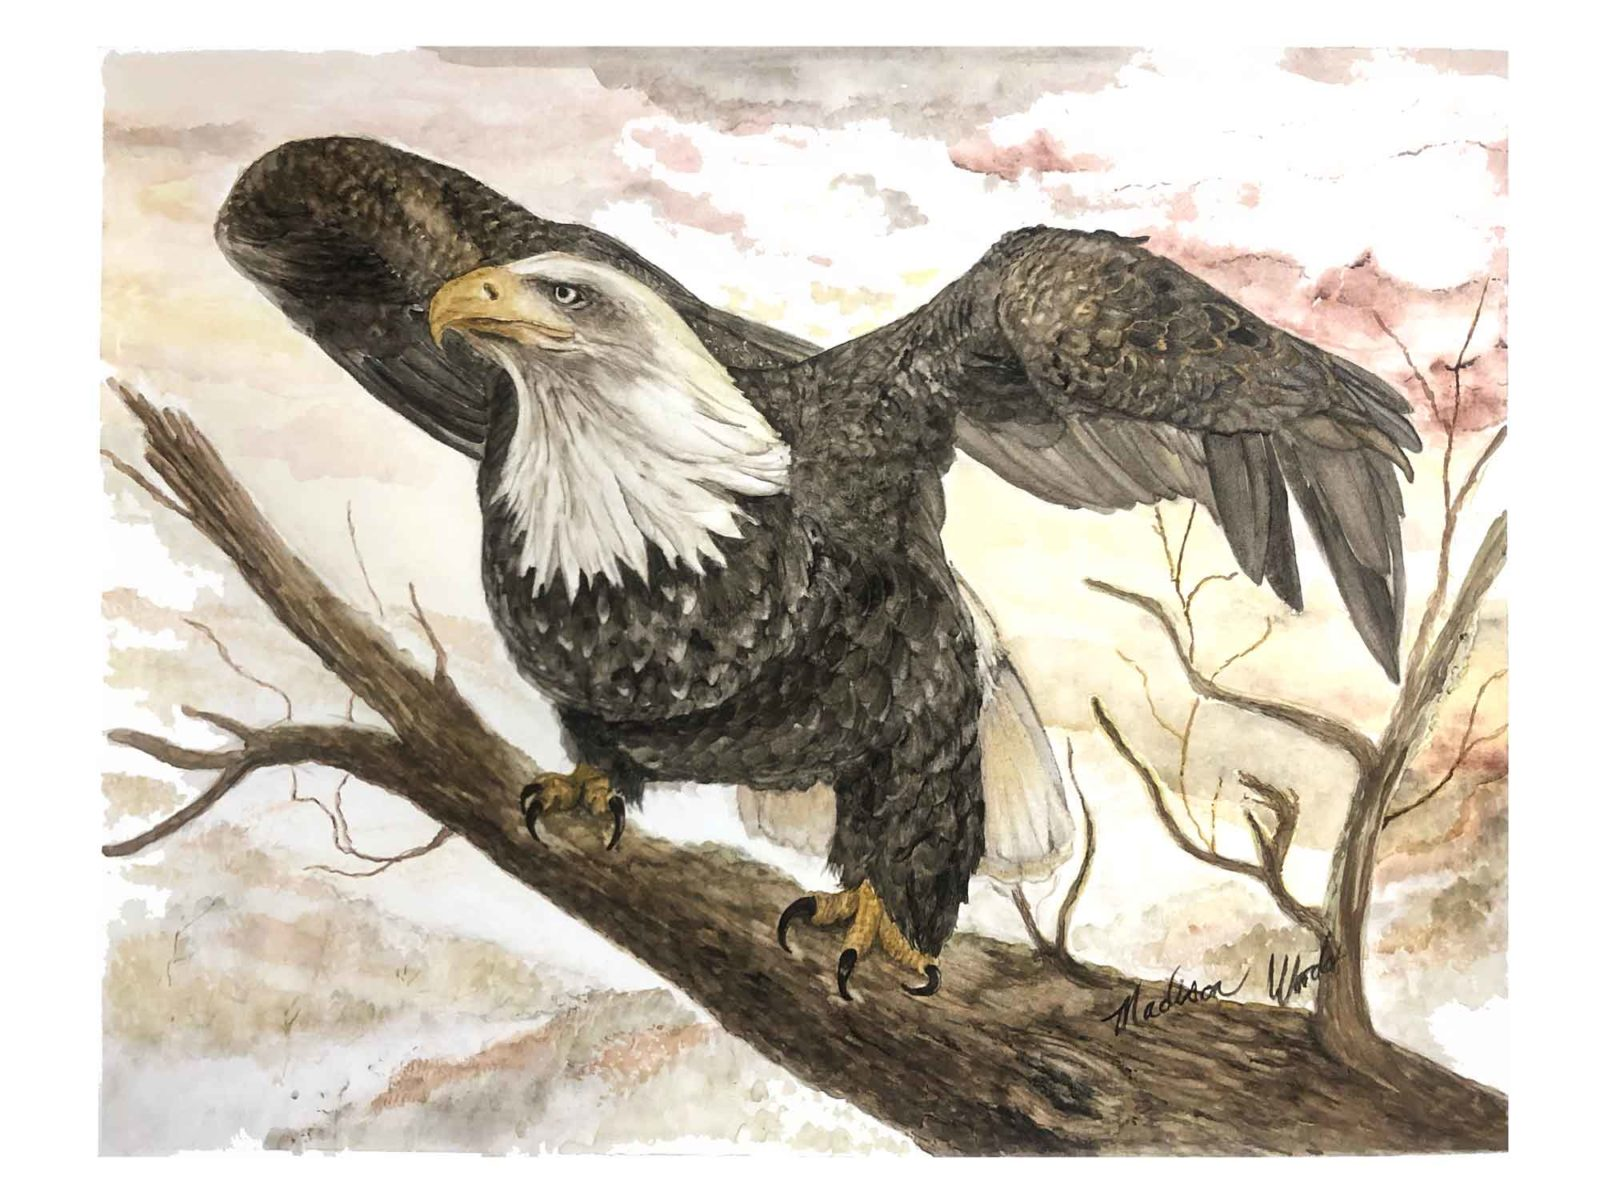 Prints of my bald eagle painting.